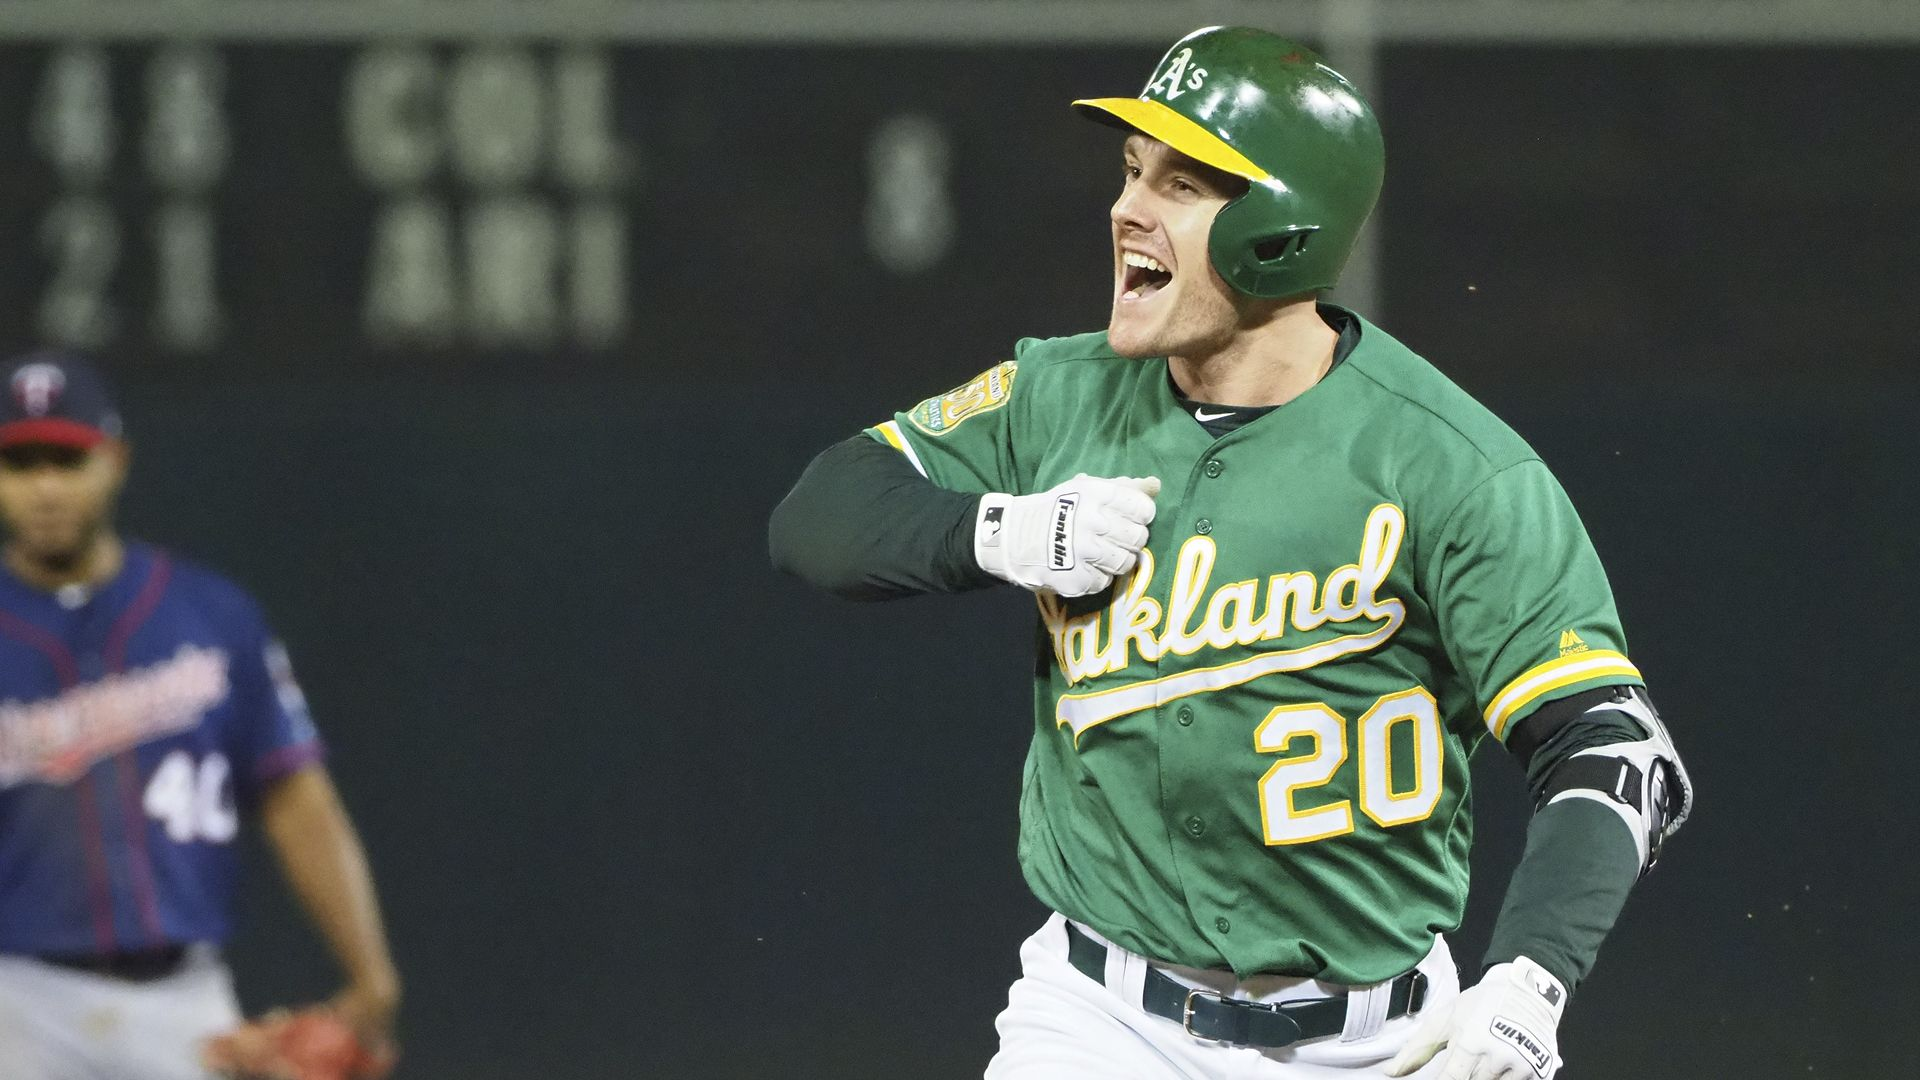 Mark Canha reaches career milestone in A's walkoff win